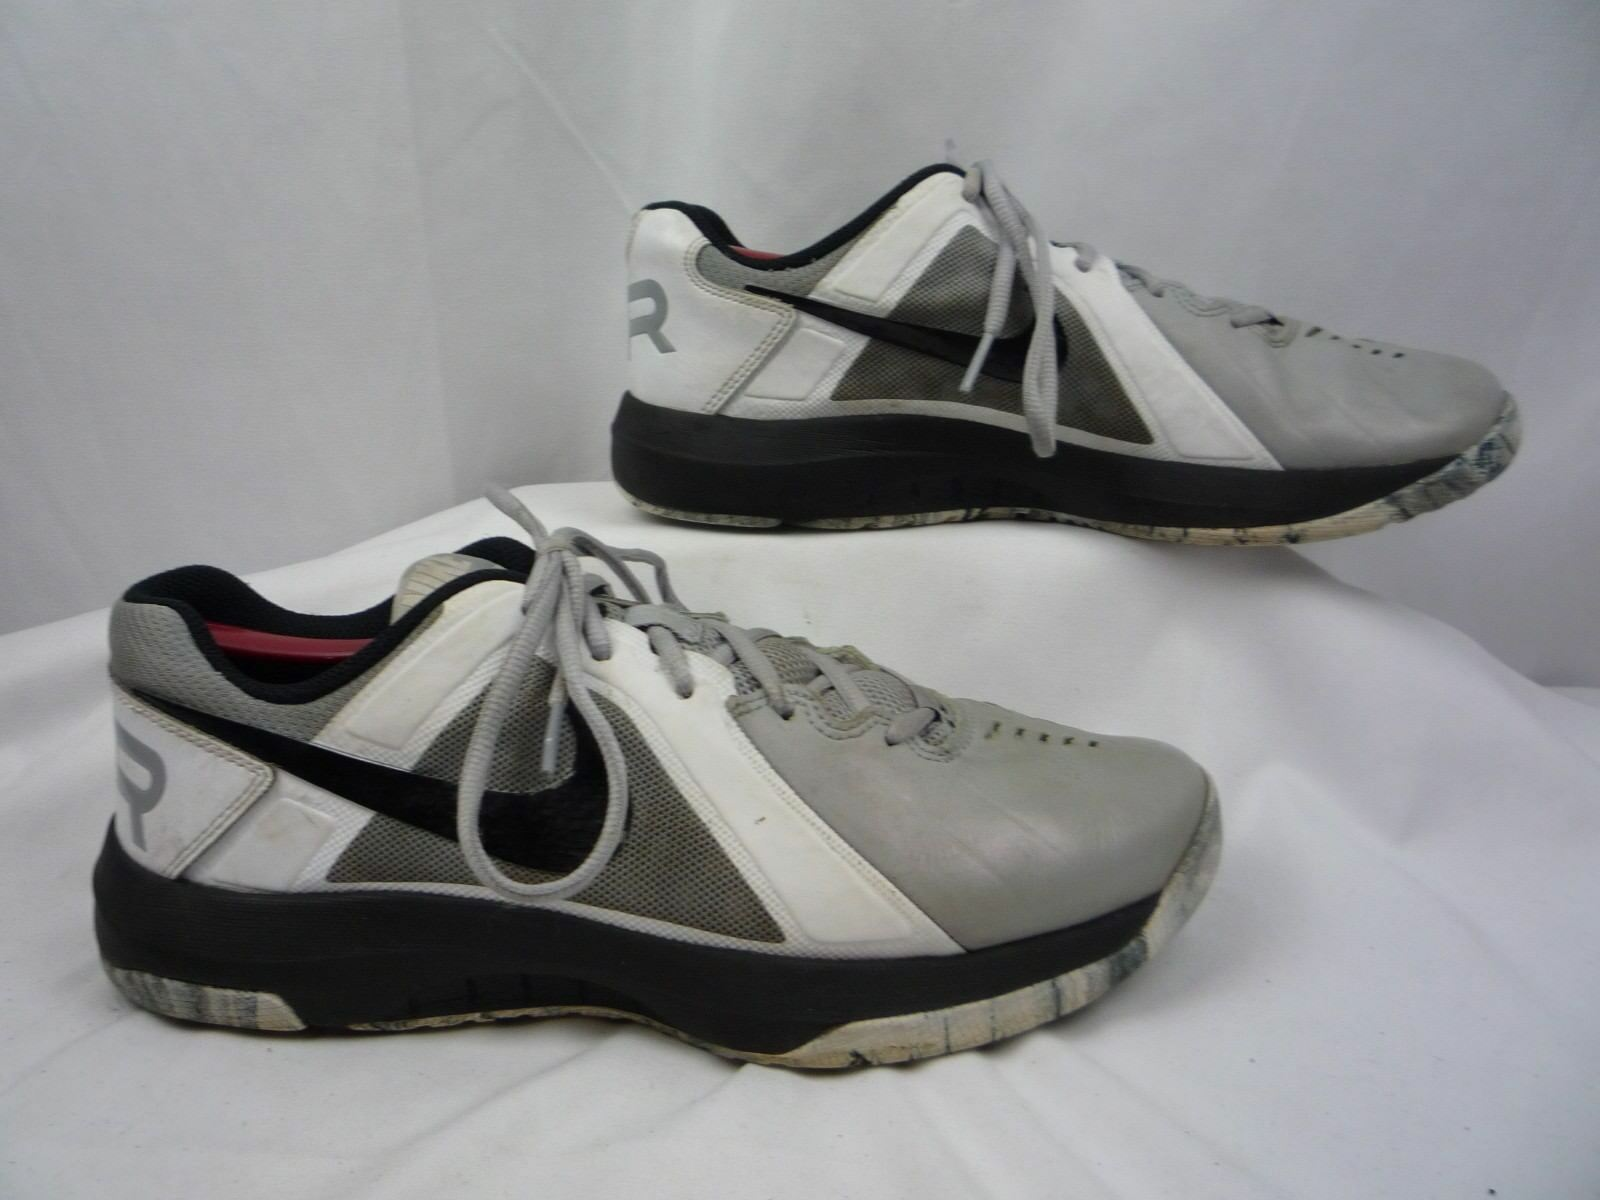 Nike Air Mavin Low Men's Basketball Shoes 719924-005 Comfortable  The most popular shoes for men and women